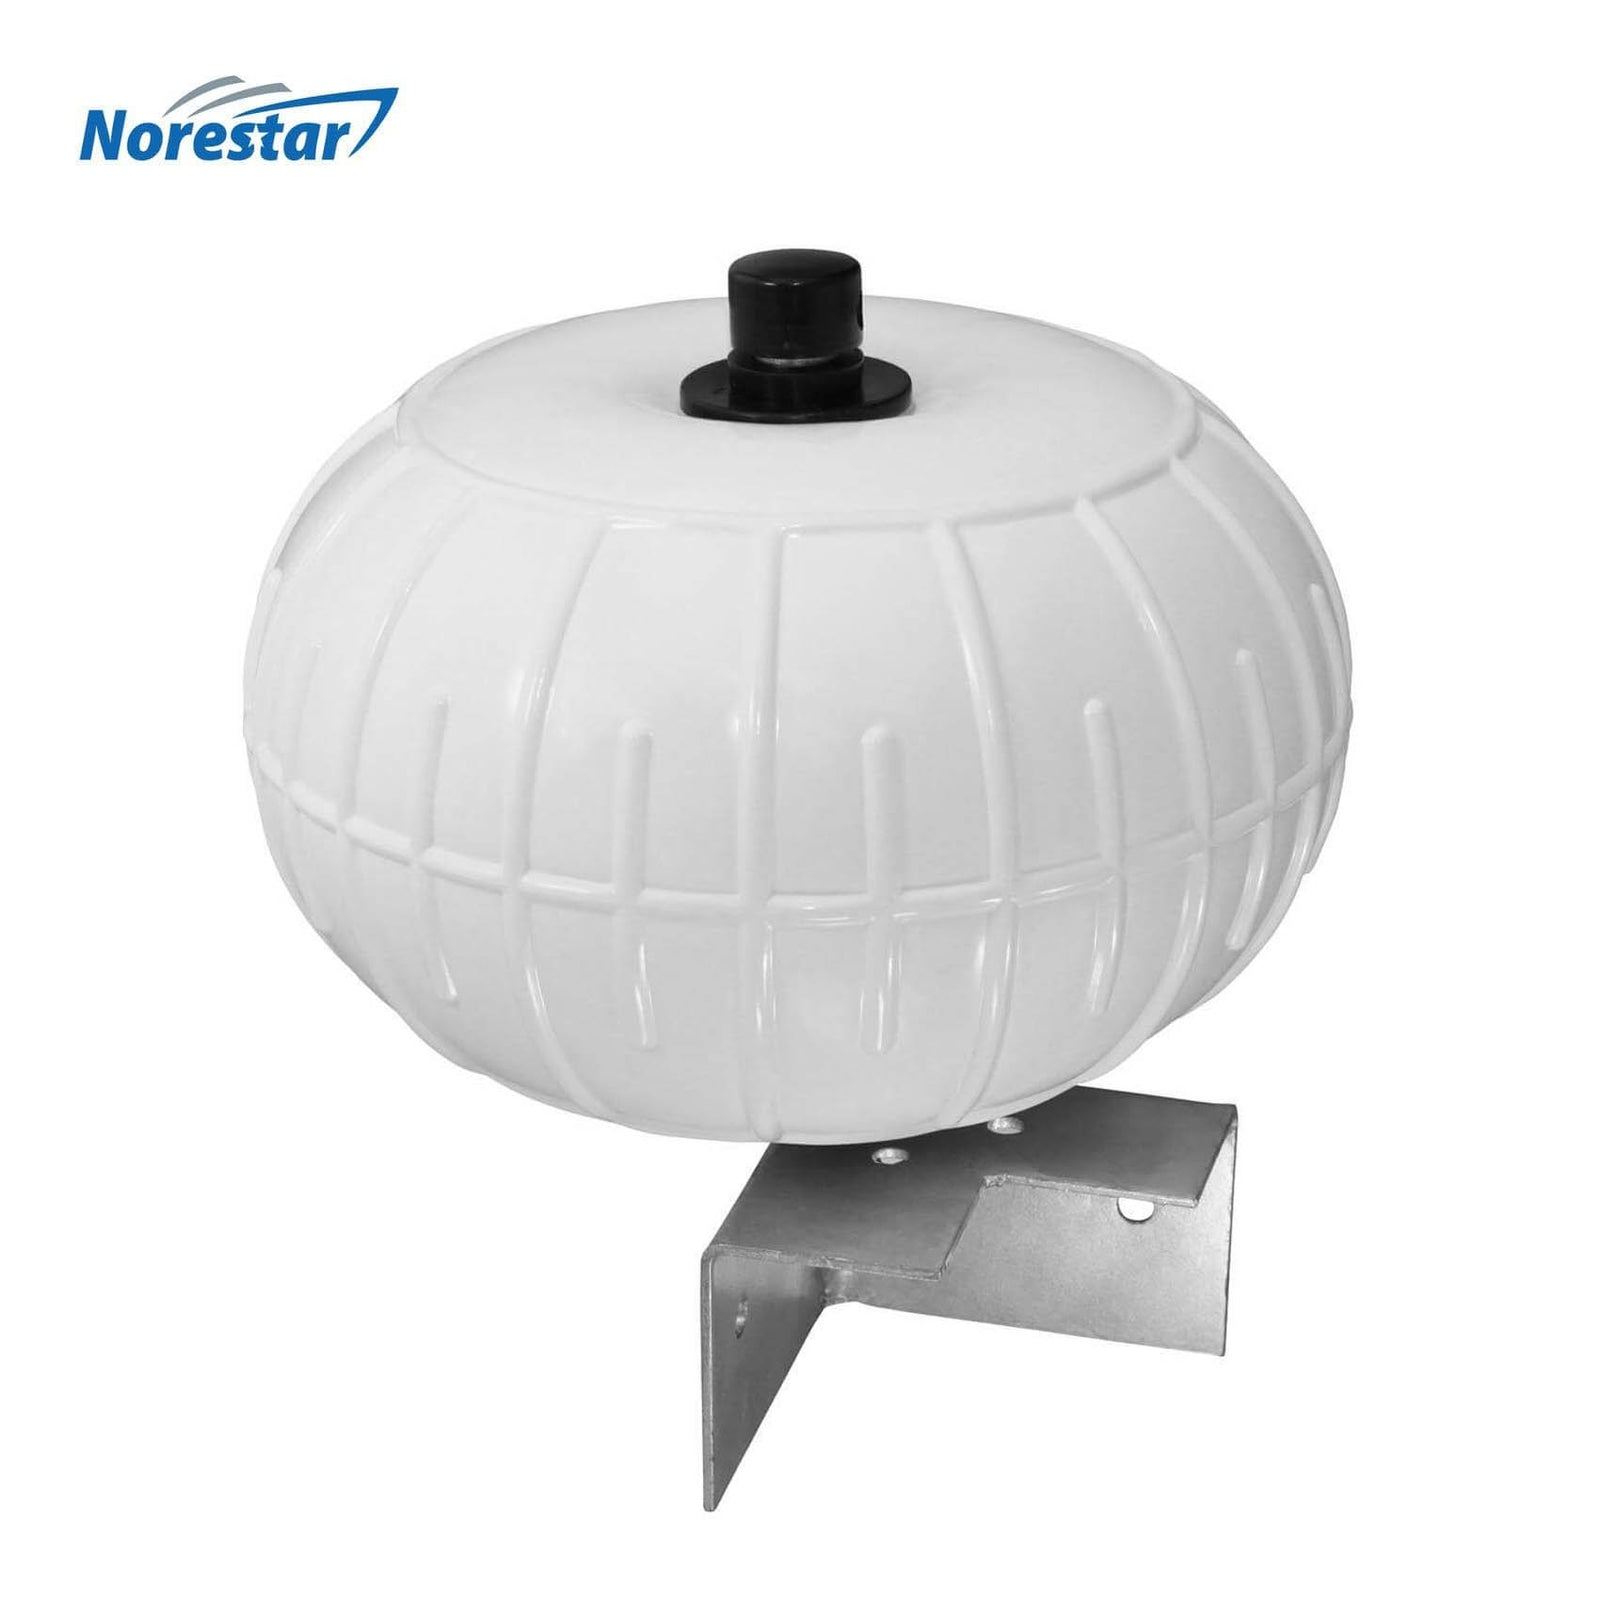 Norestar Dock Wheel Fender/Bumper, Corner Mount